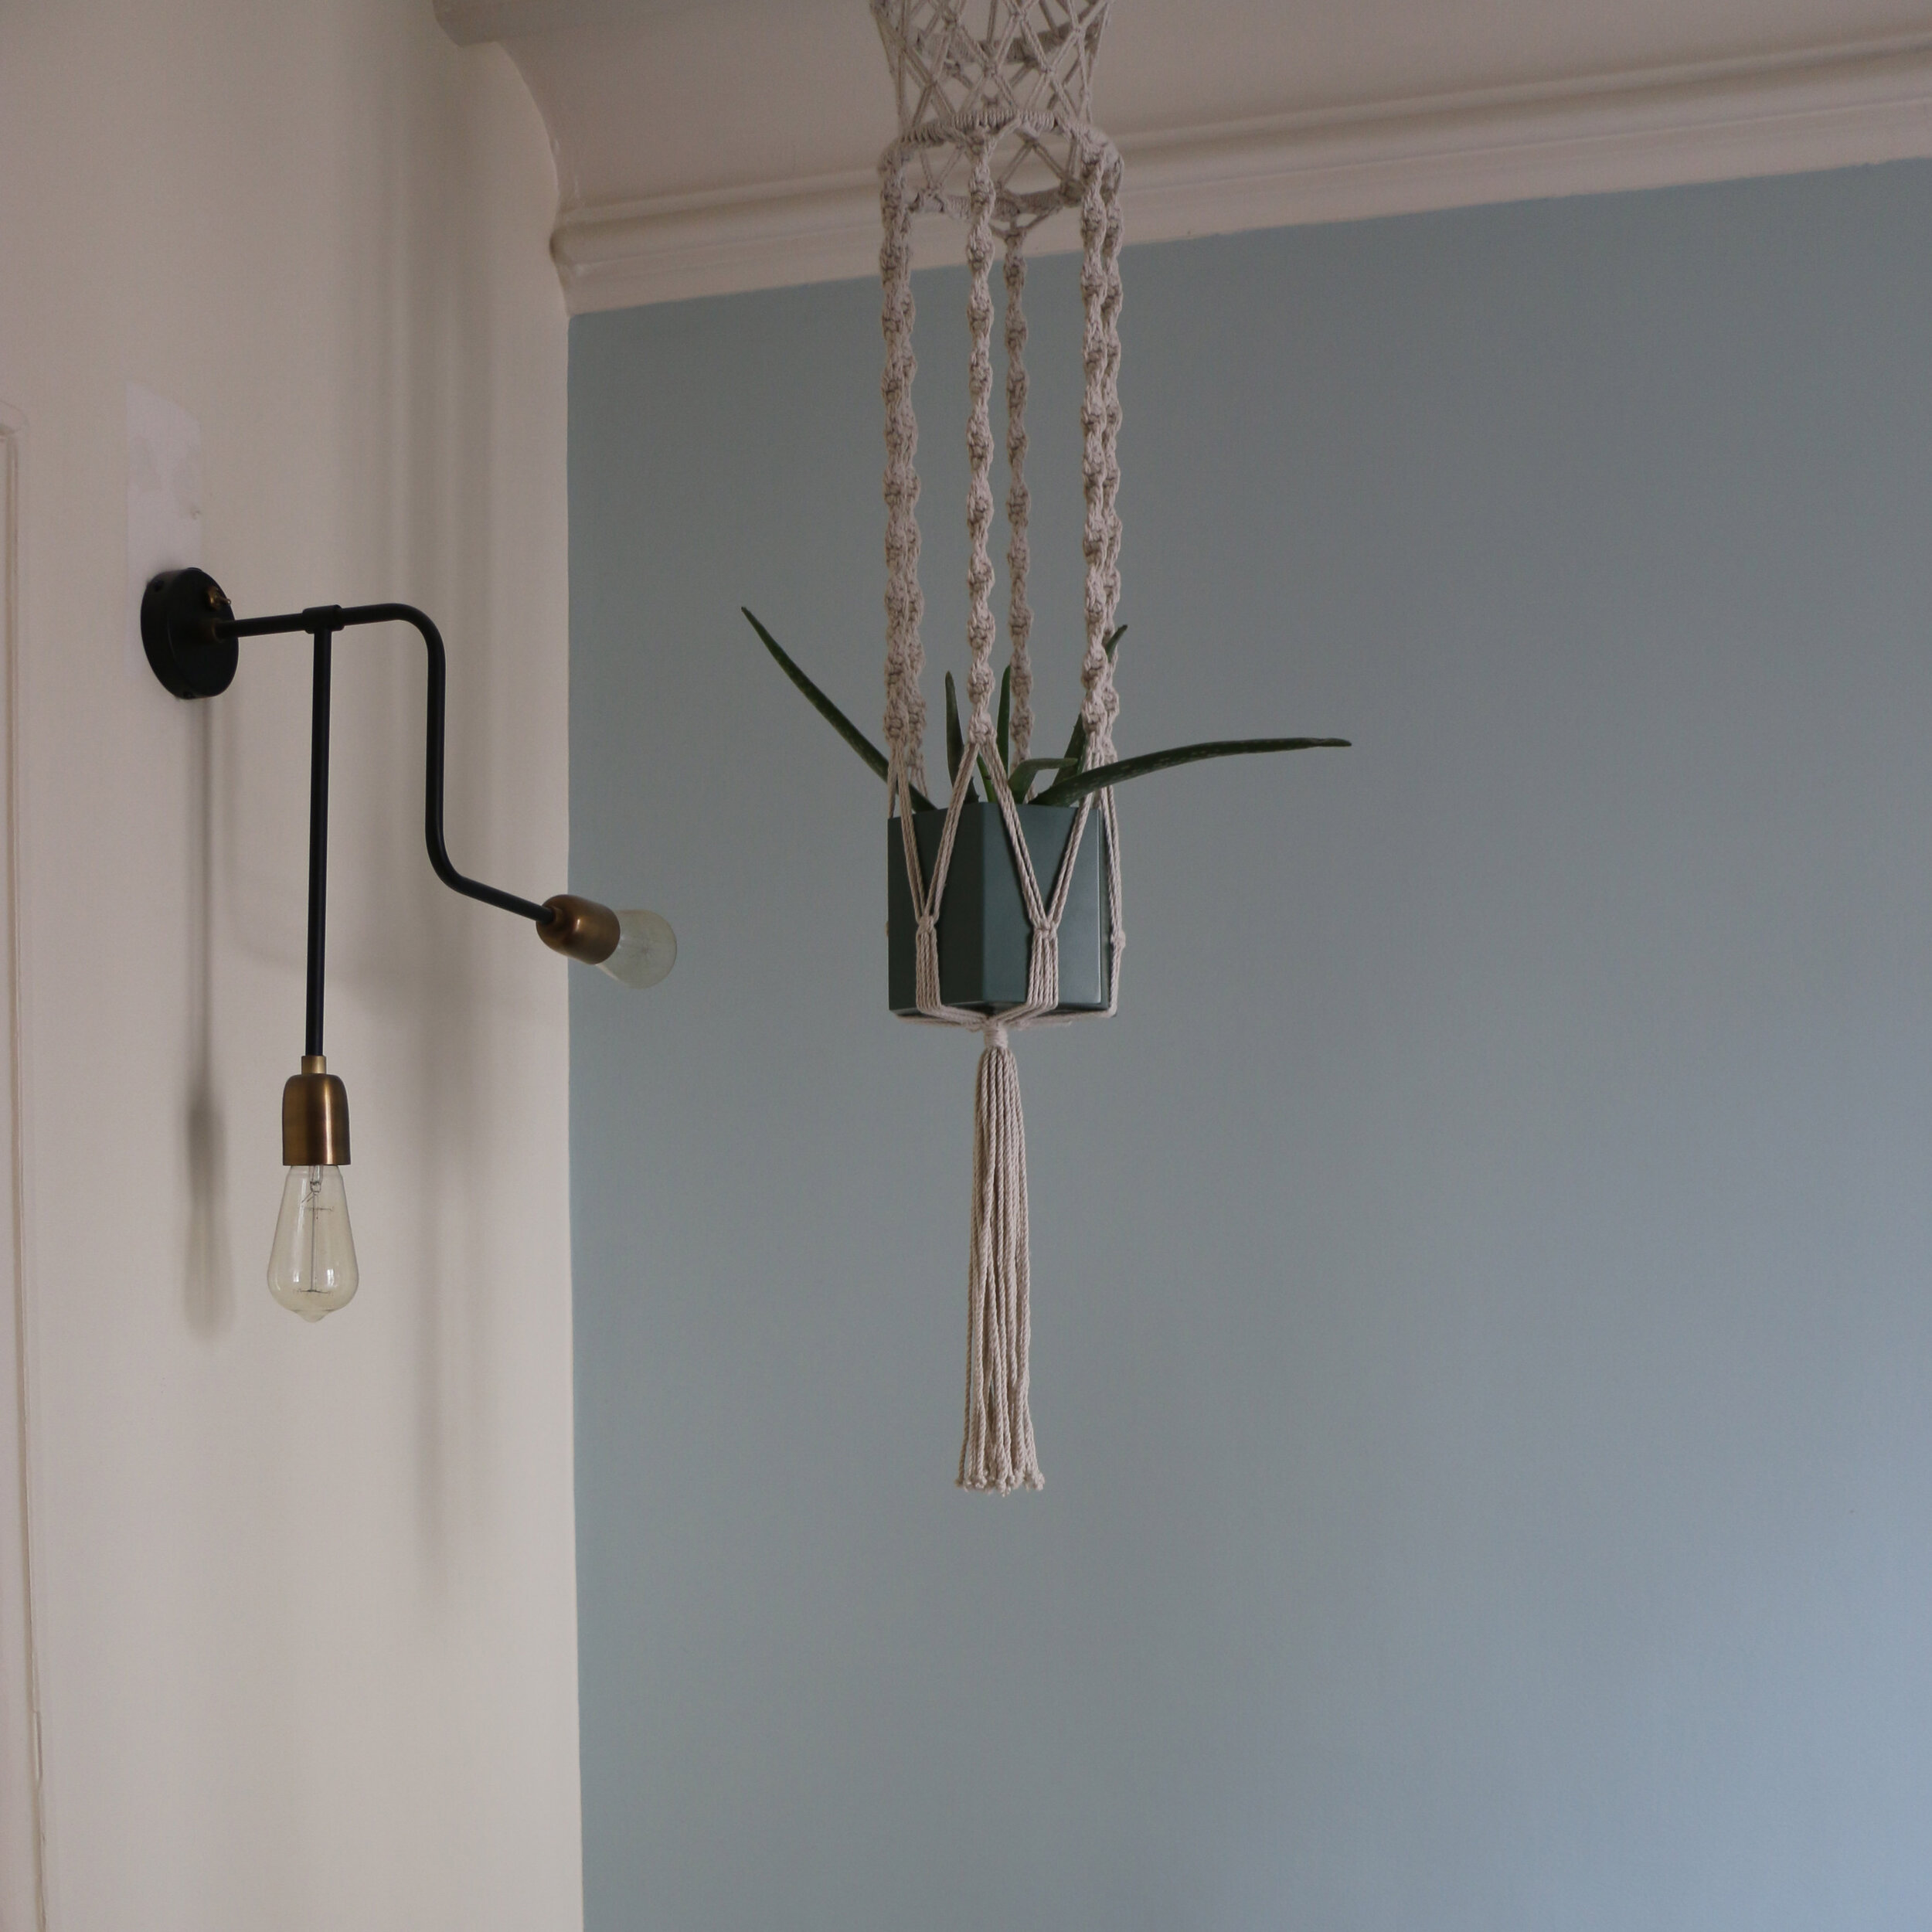 maison-bou-home-staging.jpg